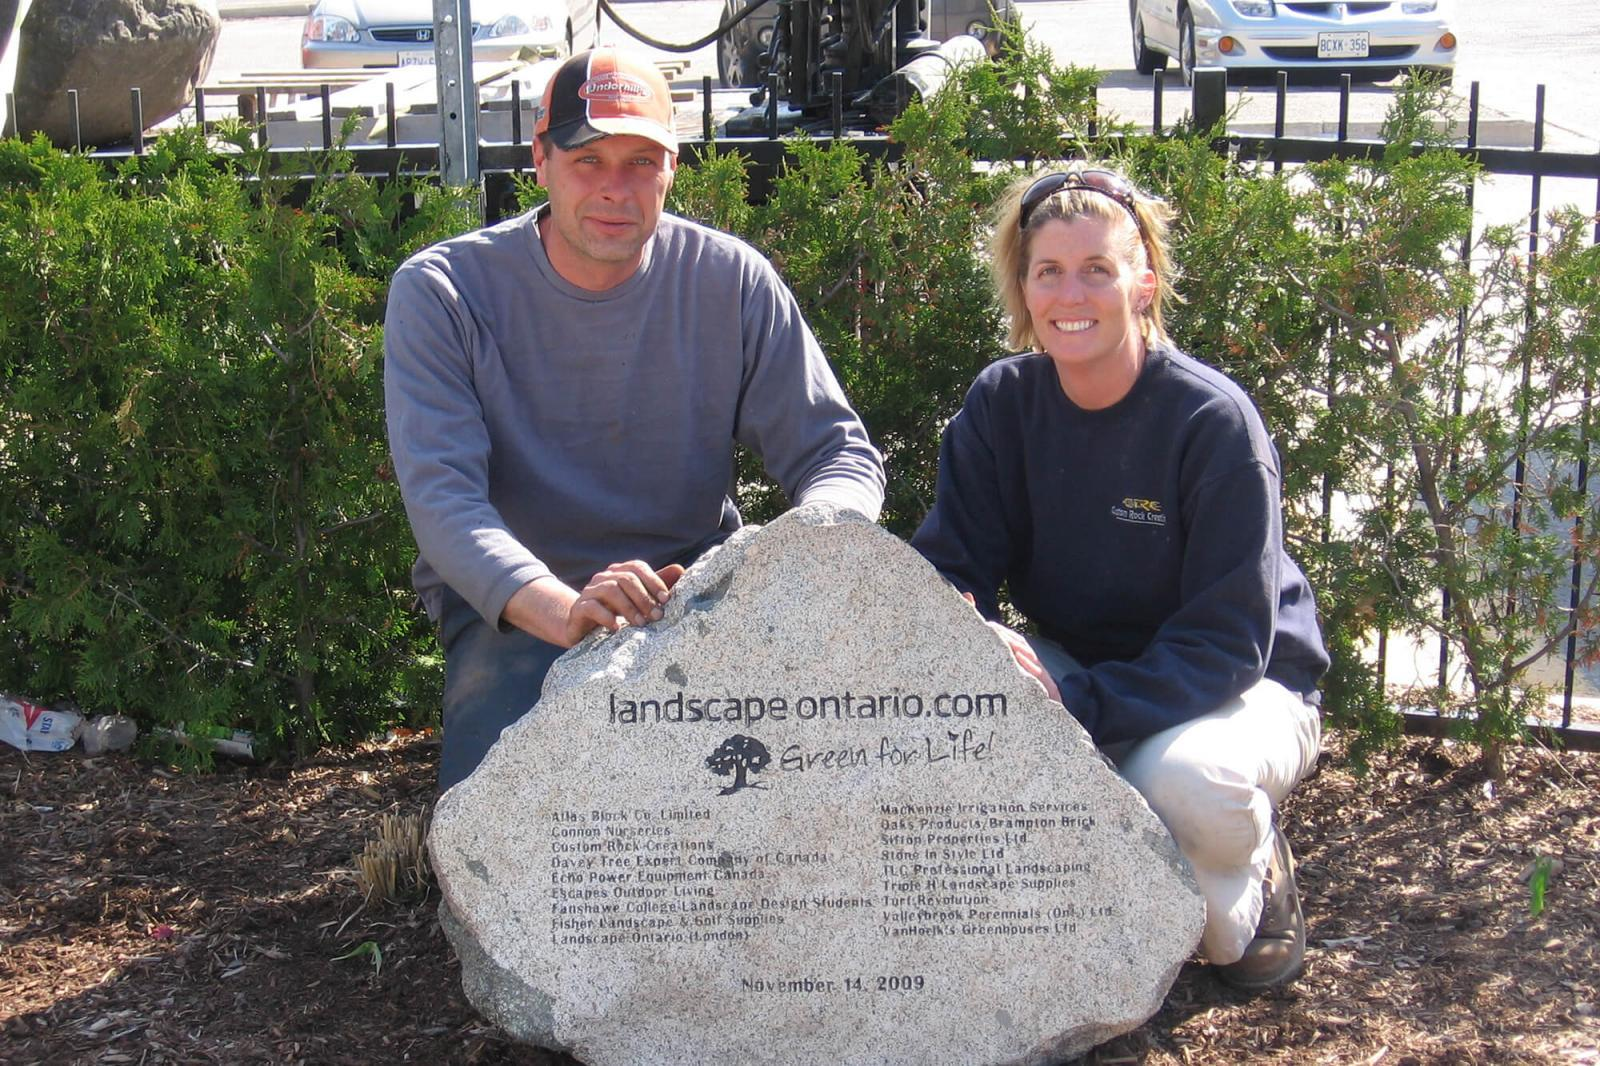 A Green for Life stone acknowledges sponsors that helped to create a beautiful garden.